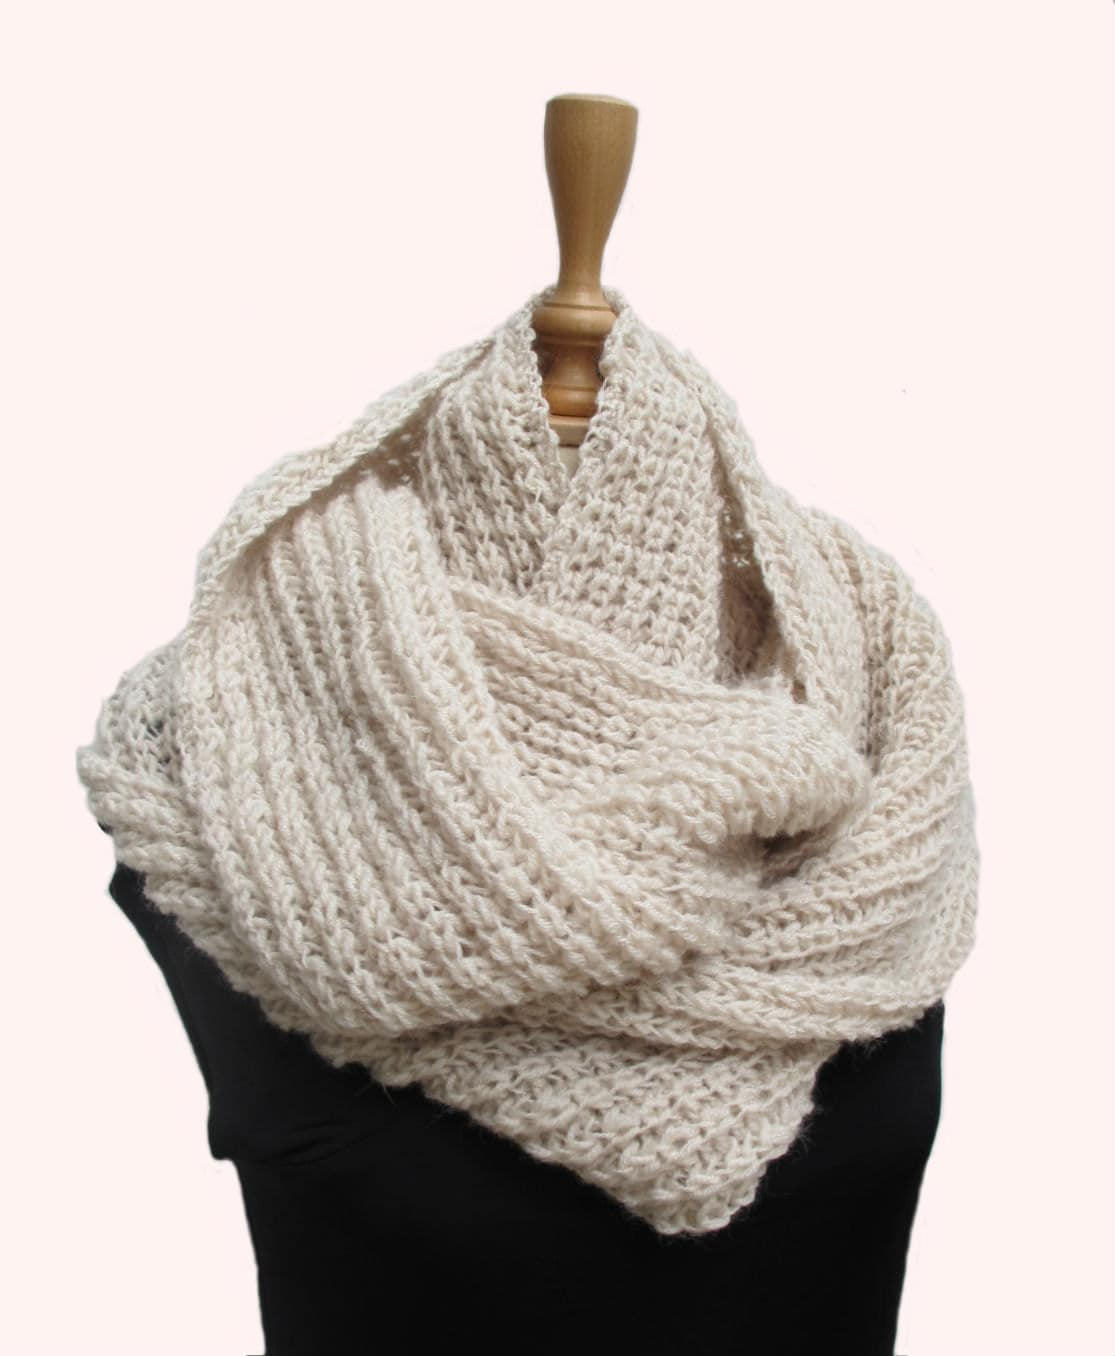 Homemade knitted infinity scarves crazy homemade crocheterfly hand knitted infinity scarf knitting scarves bankloansurffo Choice Image